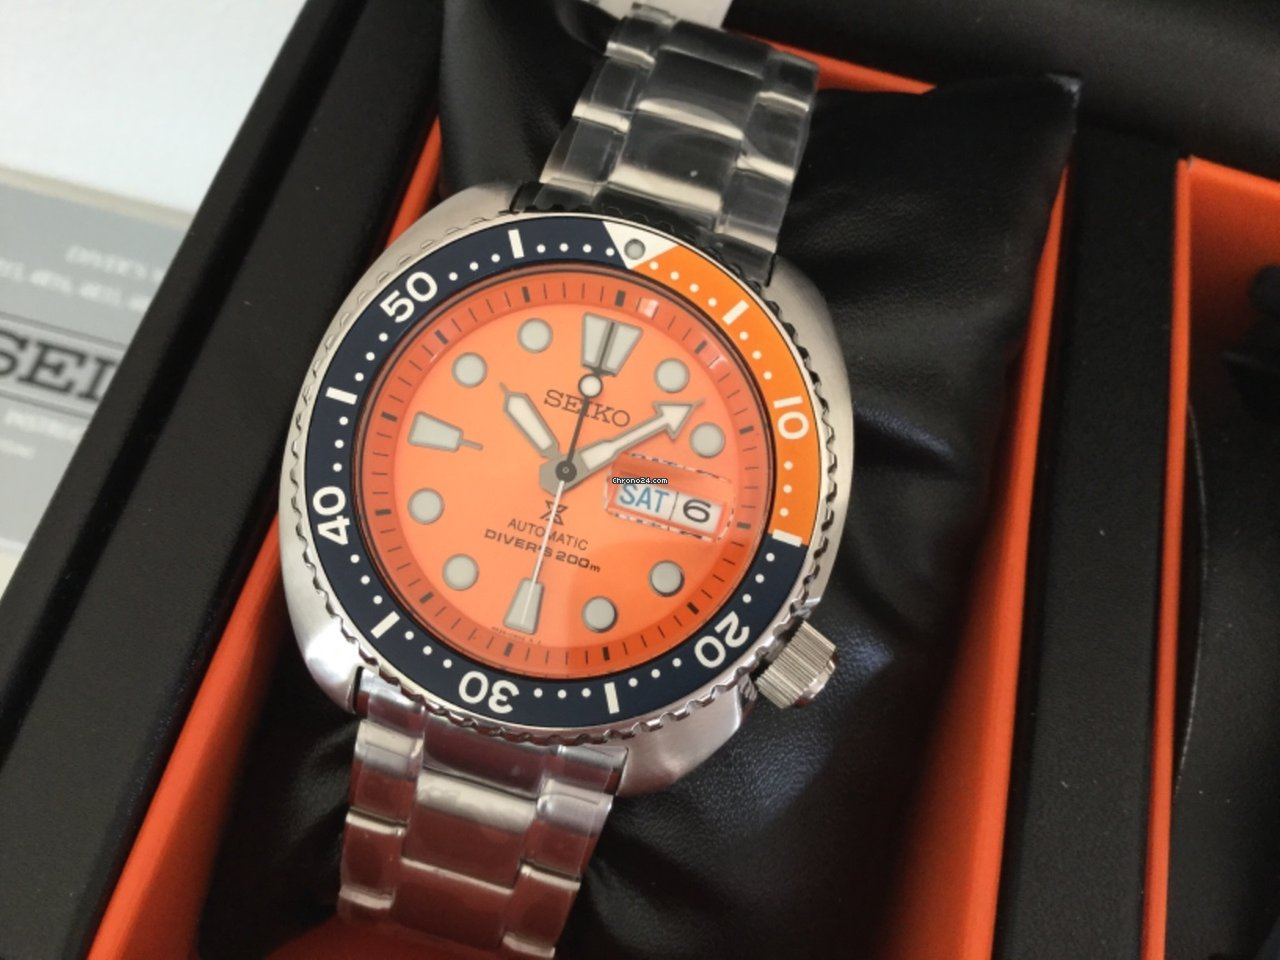 Seiko Turtle Orange Limited Edition For 24725 Sale Srpb01 From A Private Seller On Chrono24